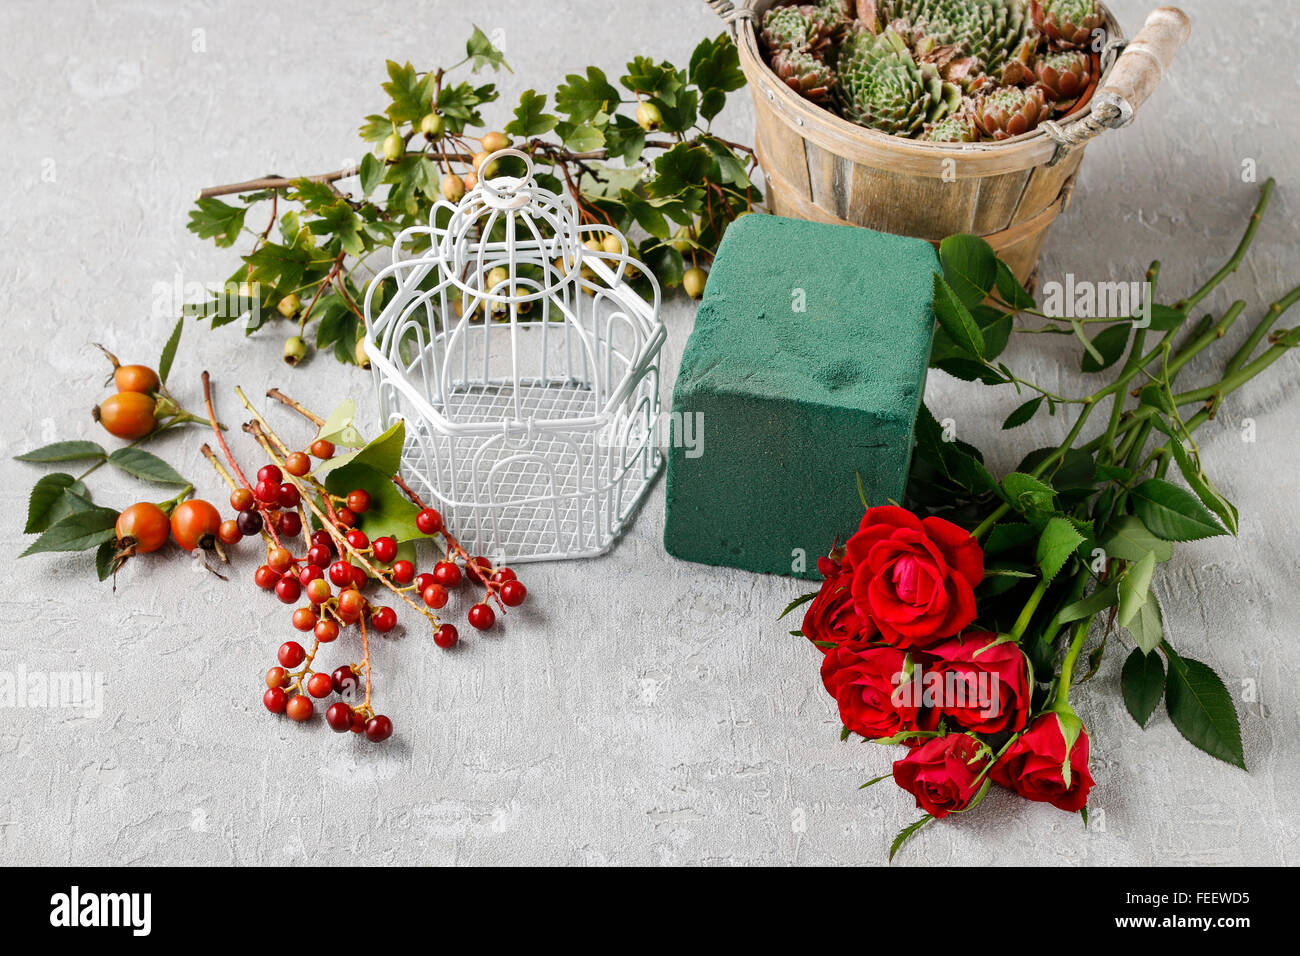 Florist at work: how to make floral arrangement with roses and hawthorn berries in vintage birdcage. - Stock Image